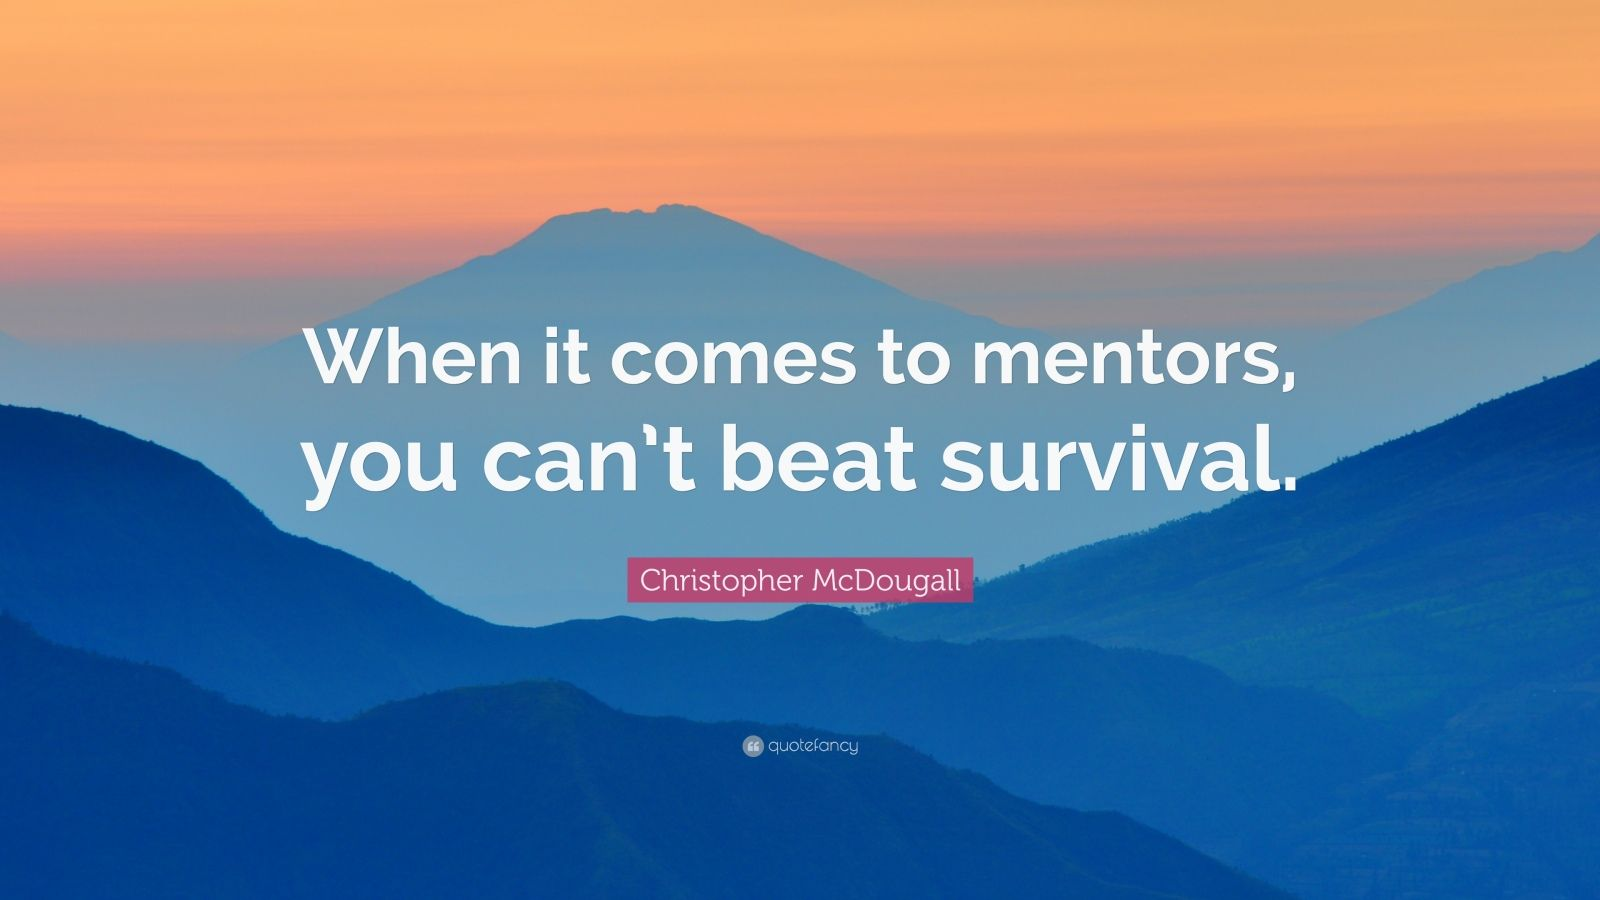 """Christopher McDougall Quote: """"When it comes to mentors, you can't beat survival."""""""